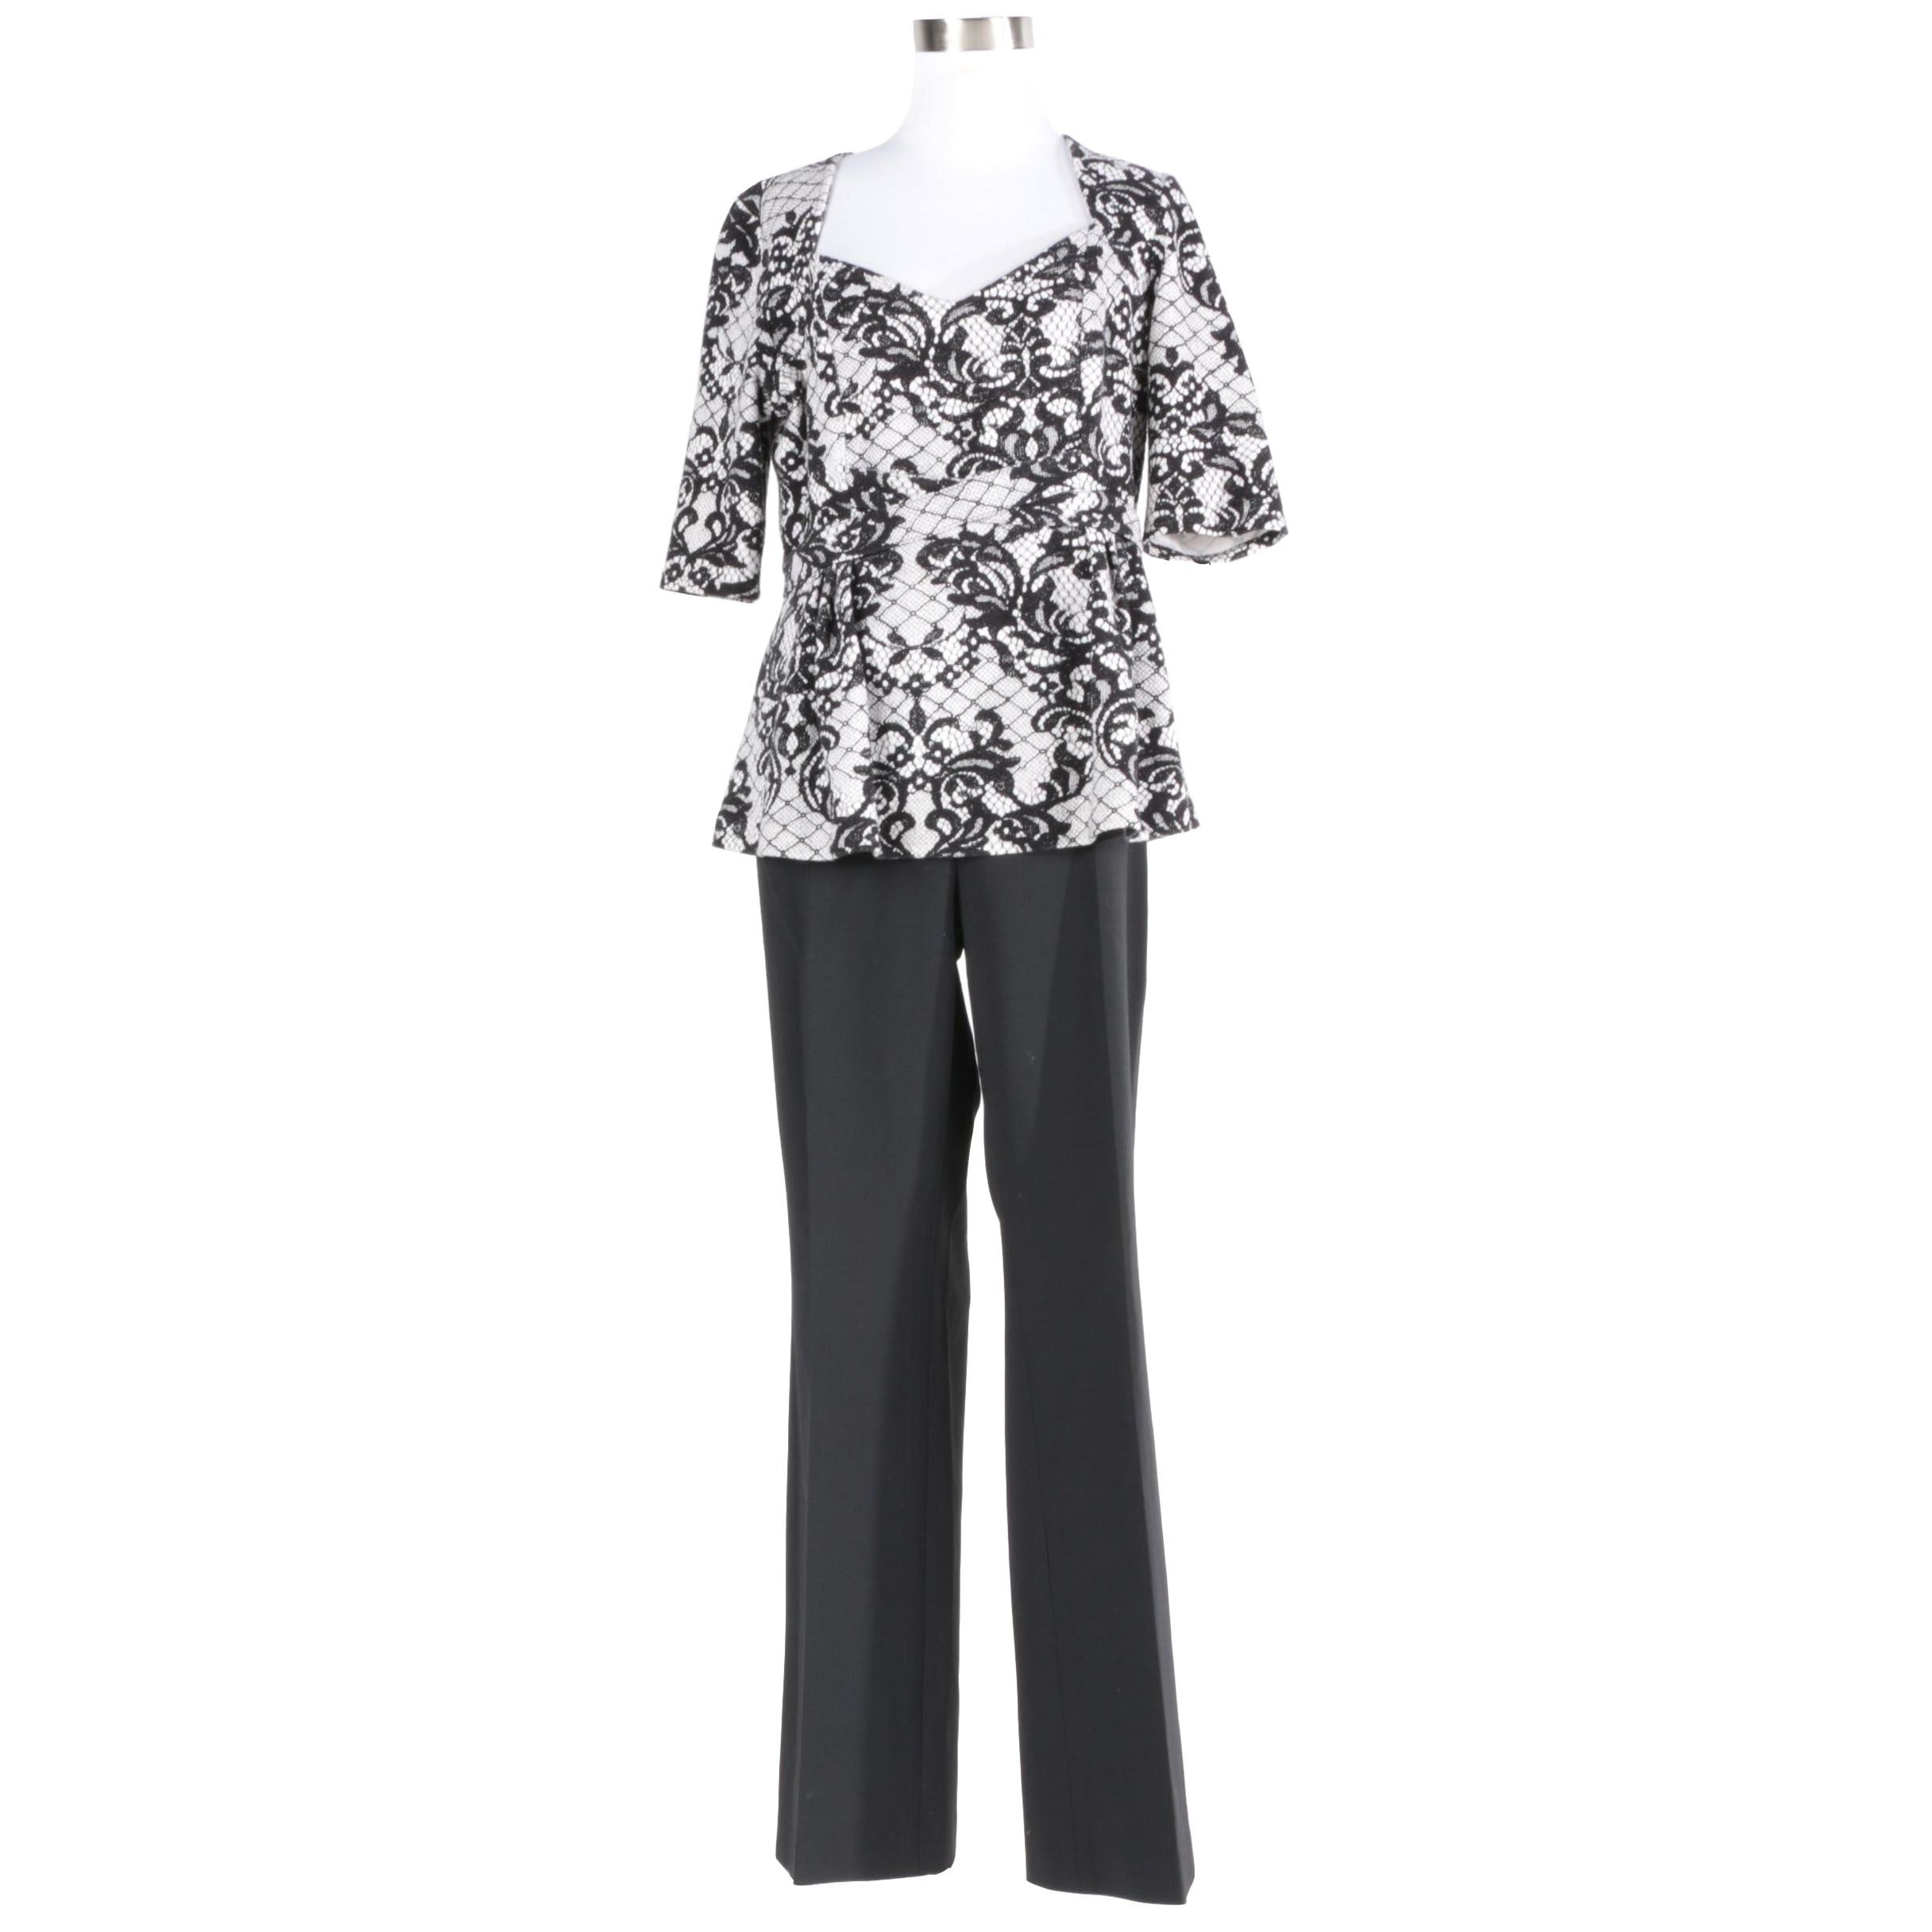 Dress Shirt and Pants Including Anthropologie and Theory